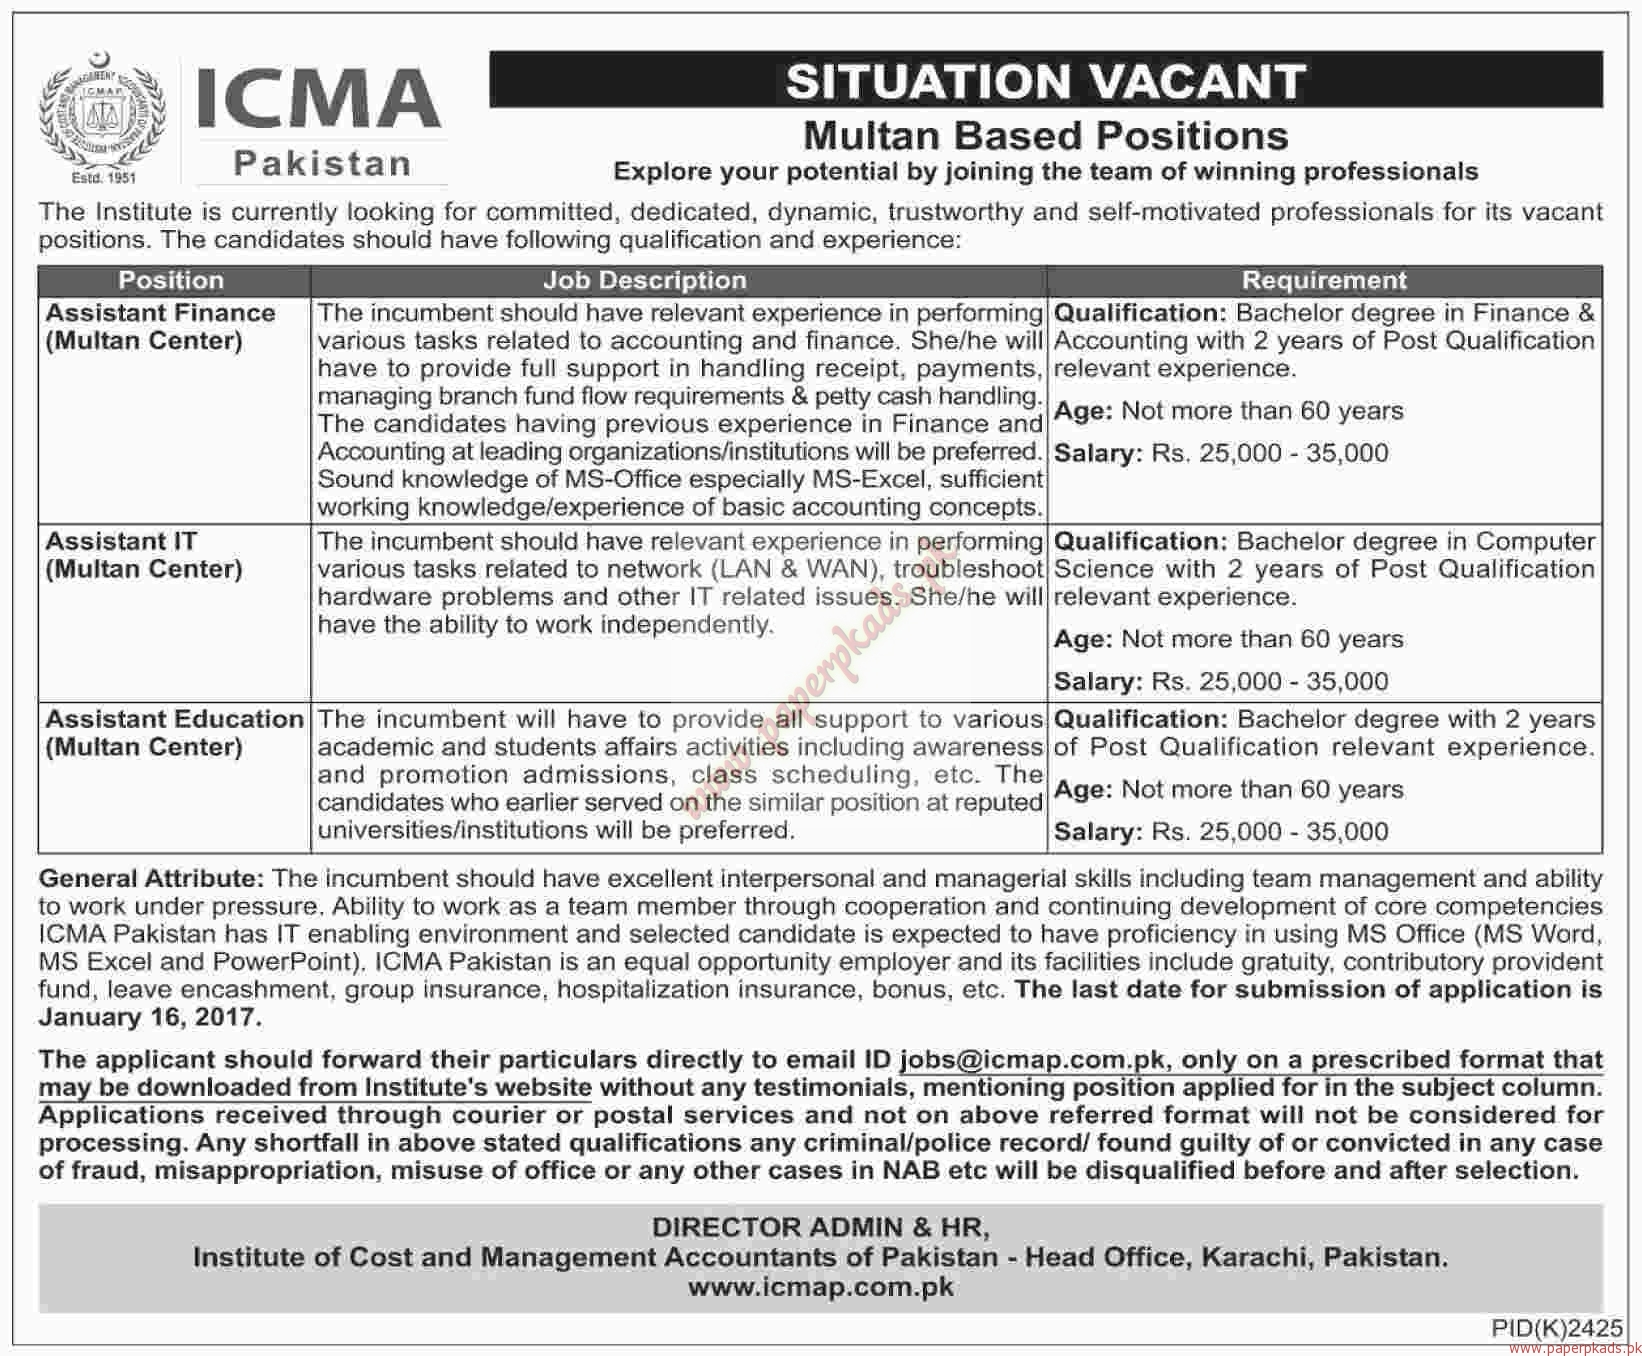 ICMA Pakistan Jobs - Dawn Jobs ads 01 January 2017